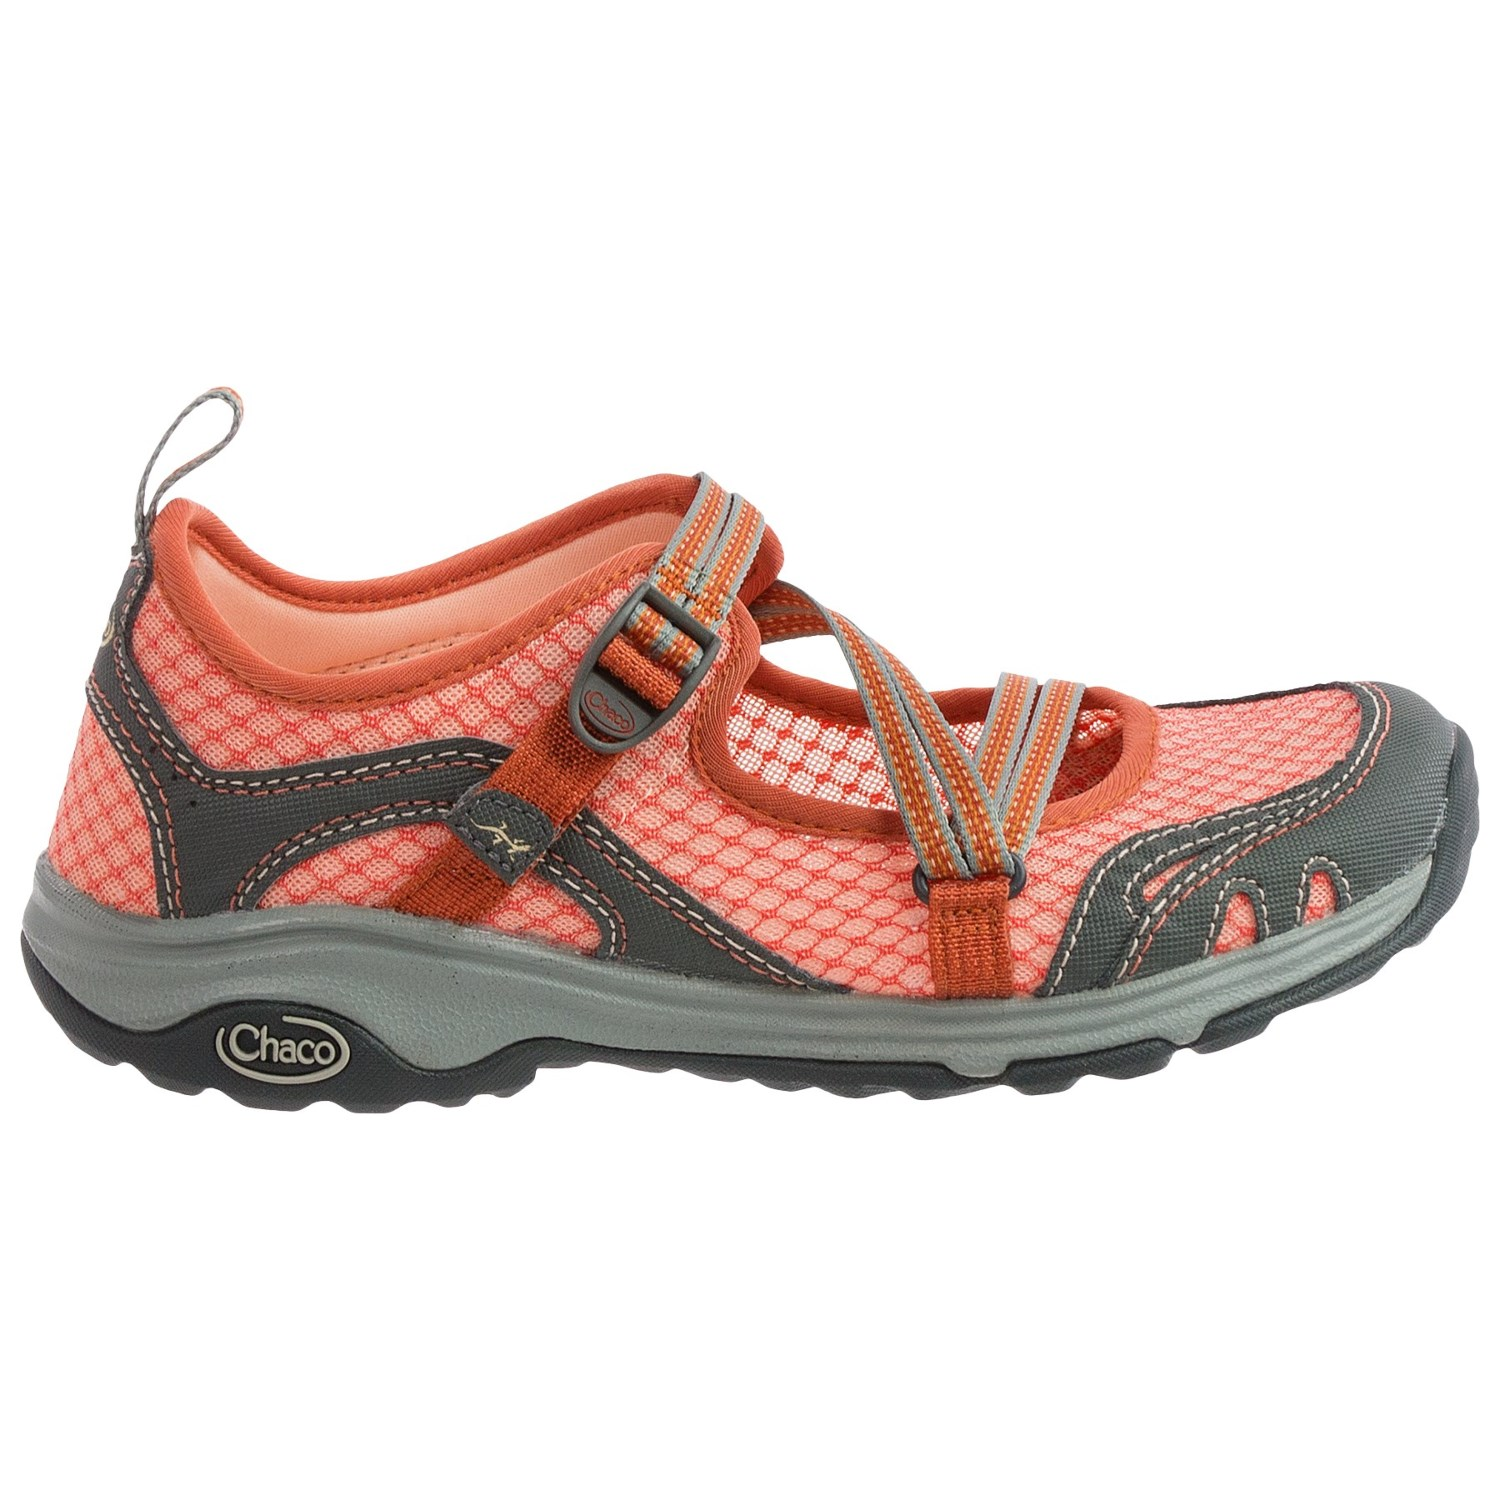 Chaco OutCross Evo Mary Jane Water Shoes (For Women) - Save 45%